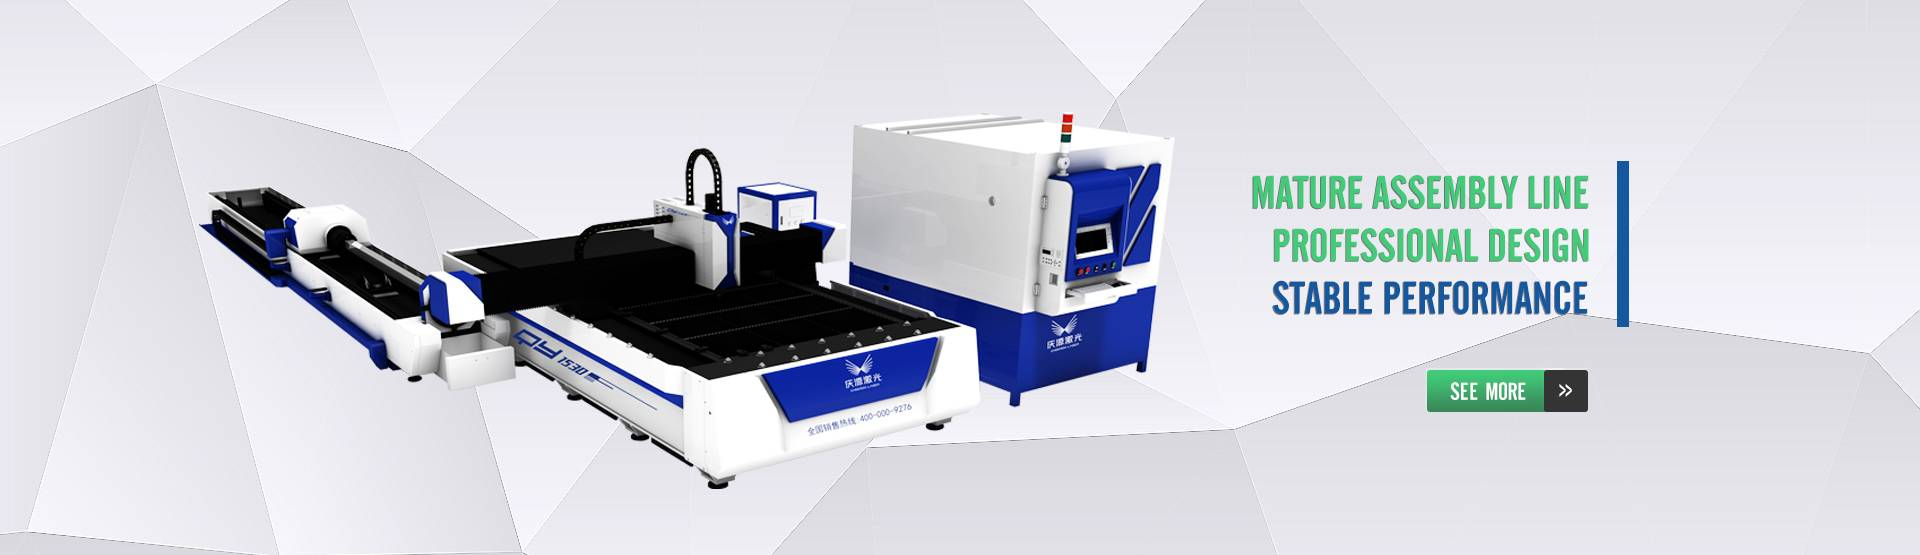 STEEL COIL LASER CUTTING MACHINE